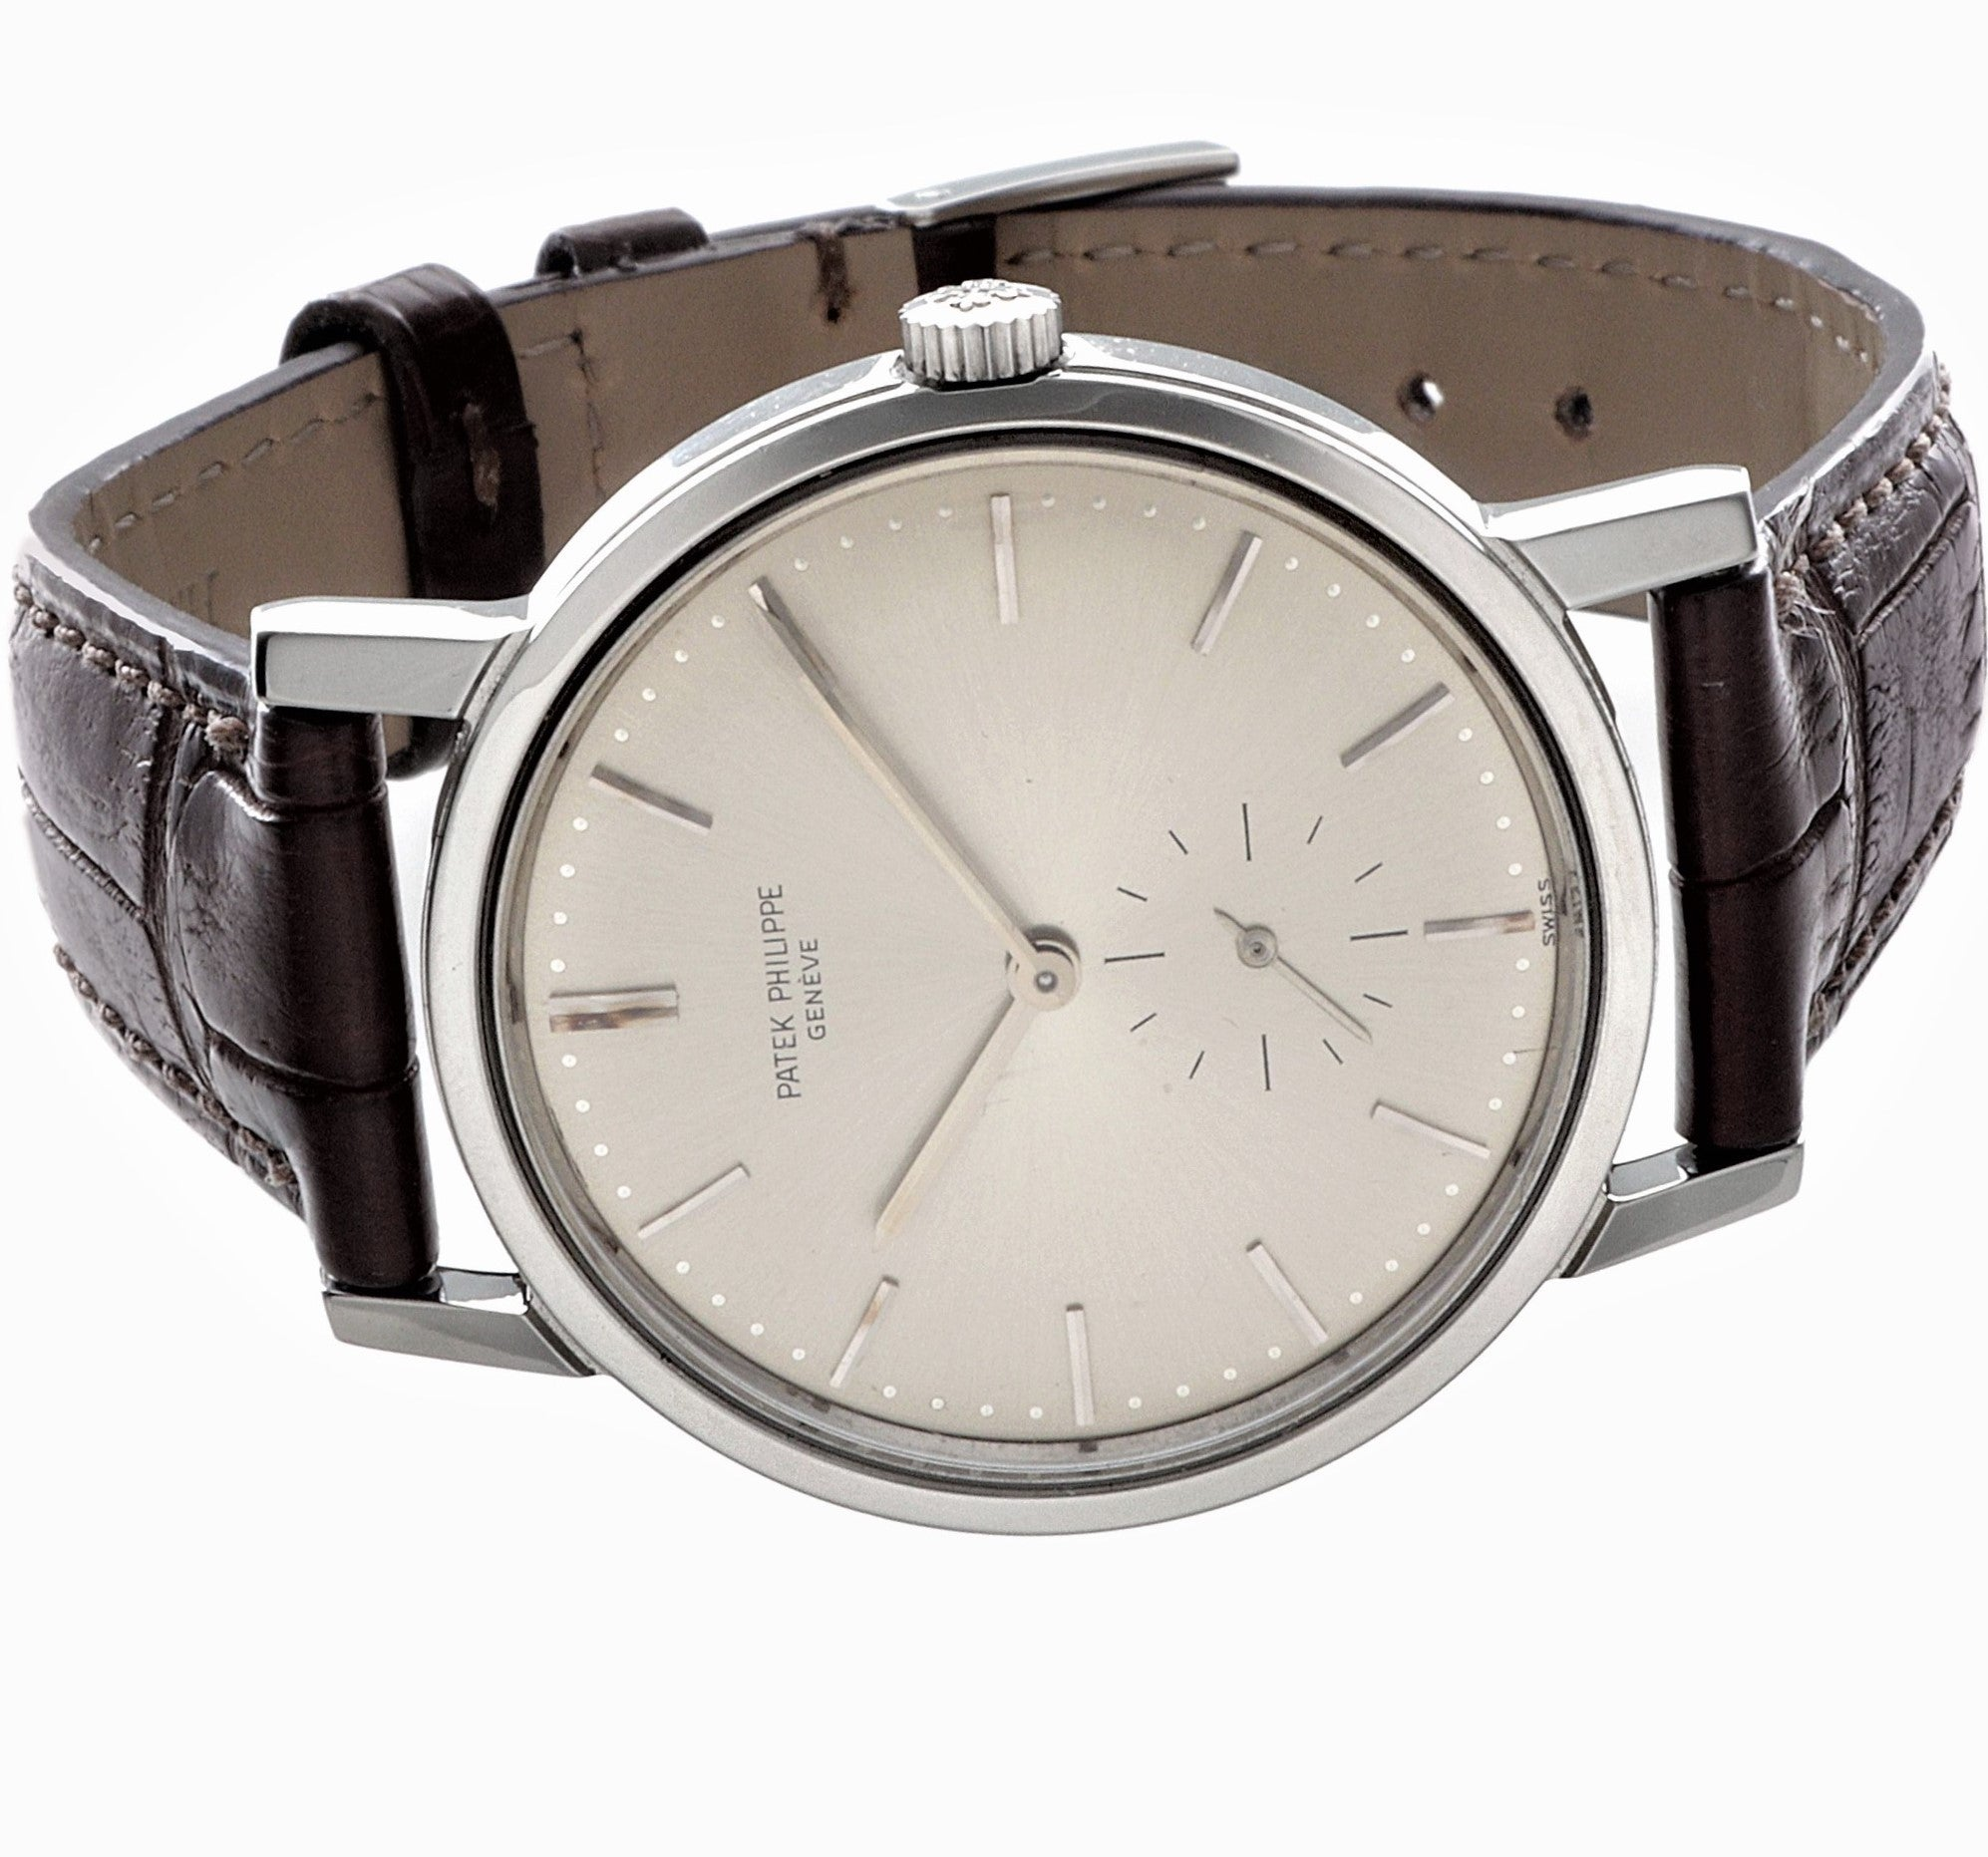 Patek Philippe 3466A Stainless Steel Automatic Water Resistant Calatrava, Circa 1967